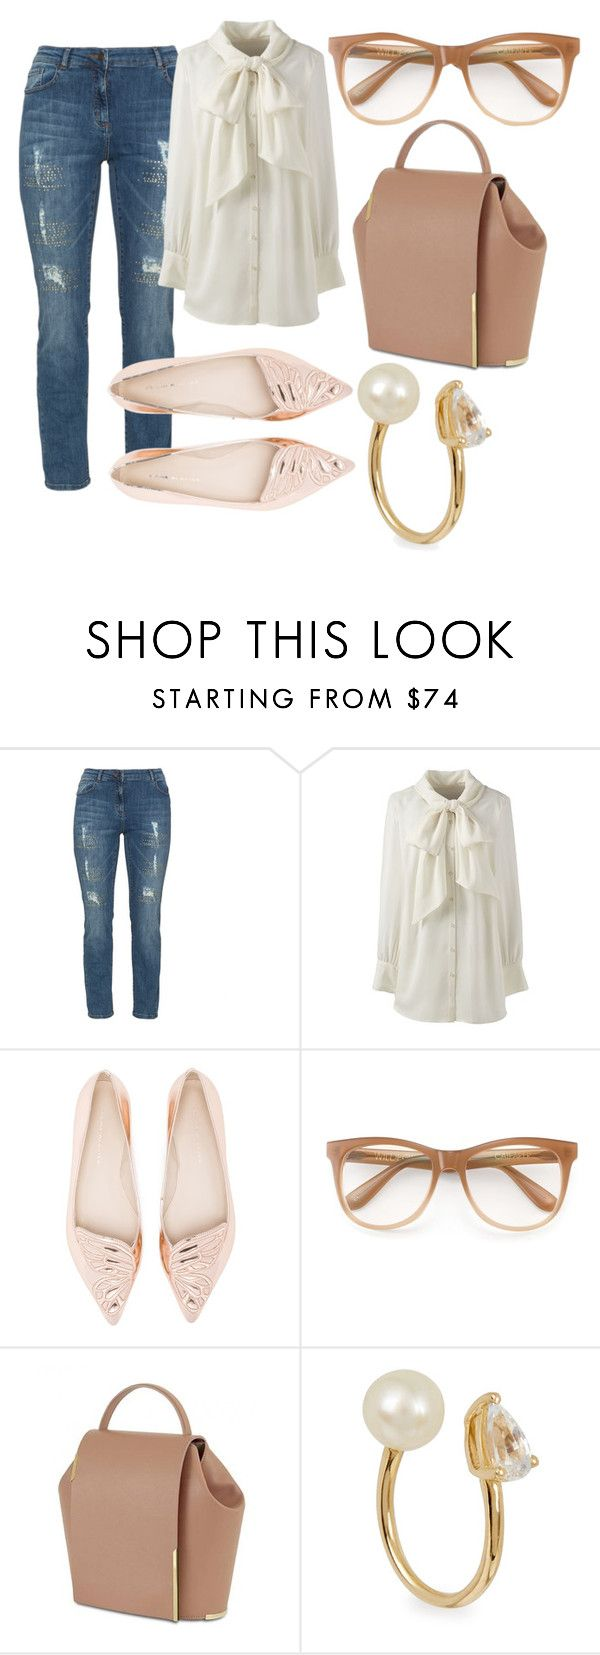 """""""plus size ada"""" by aleger-1 ❤ liked on Polyvore featuring aprico, Lands' End, Sophia Webster, Wildfox, Anissa Kermiche and plus size clothing"""